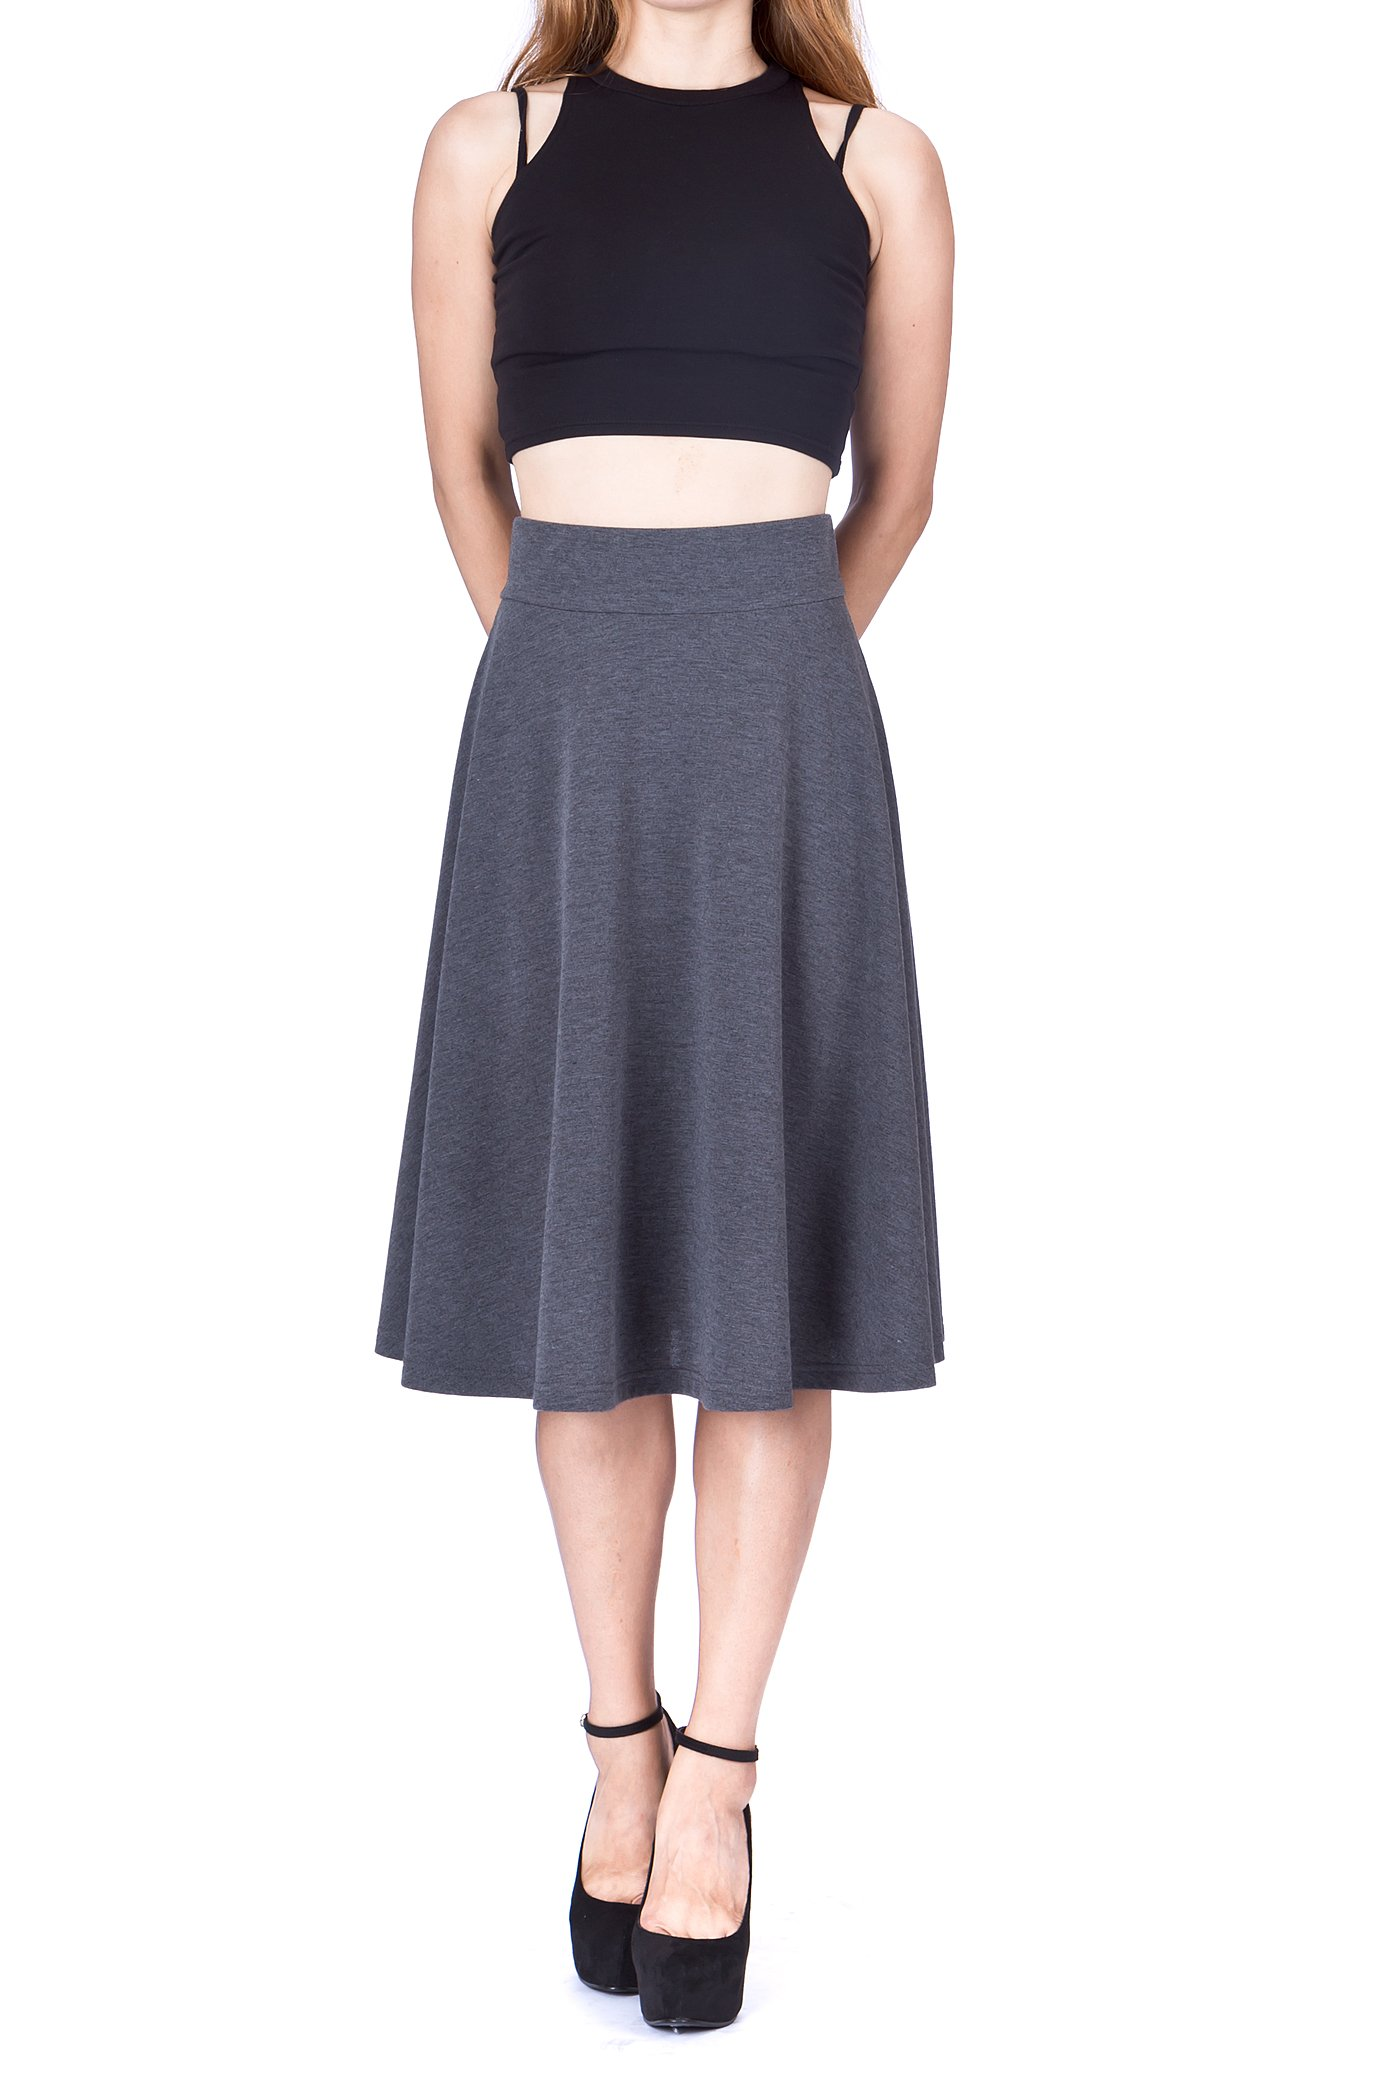 Feel The Retro Mood Wide High Waist A line Full Flared Swing Skater Midi Skirt Charcoal 4